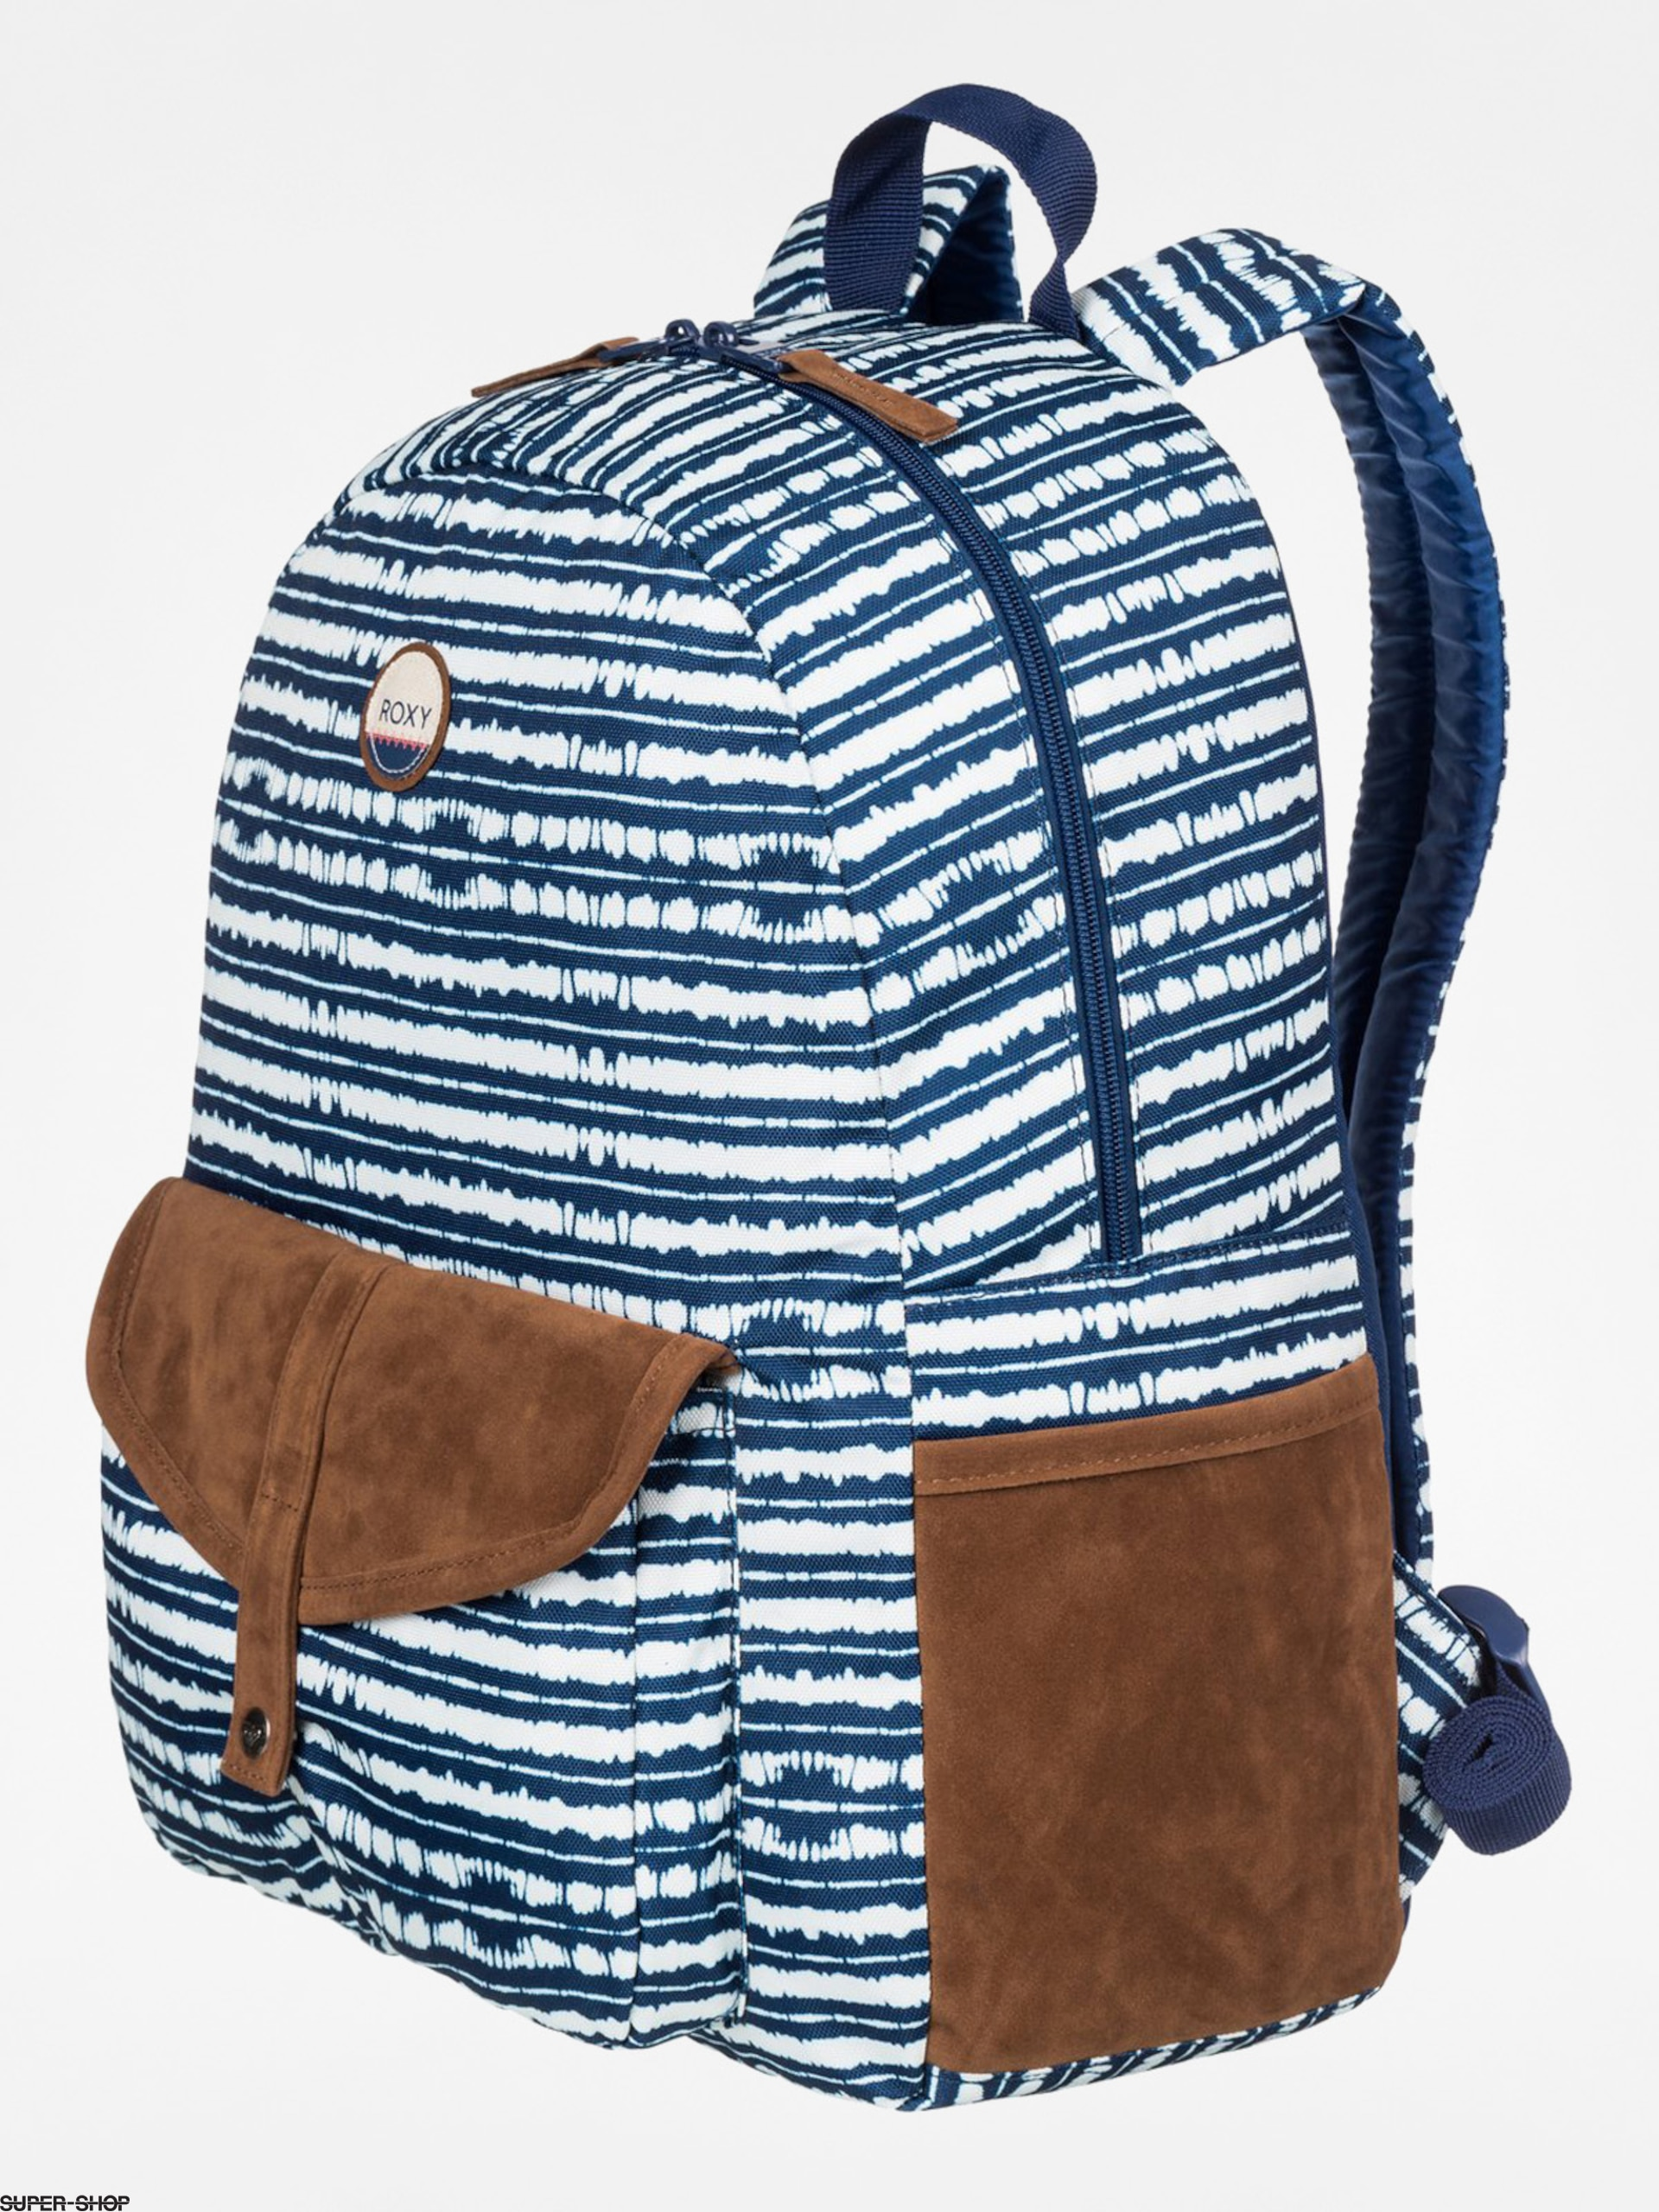 Roxy Rucksack Carribean Wmn (navy/brown/white)